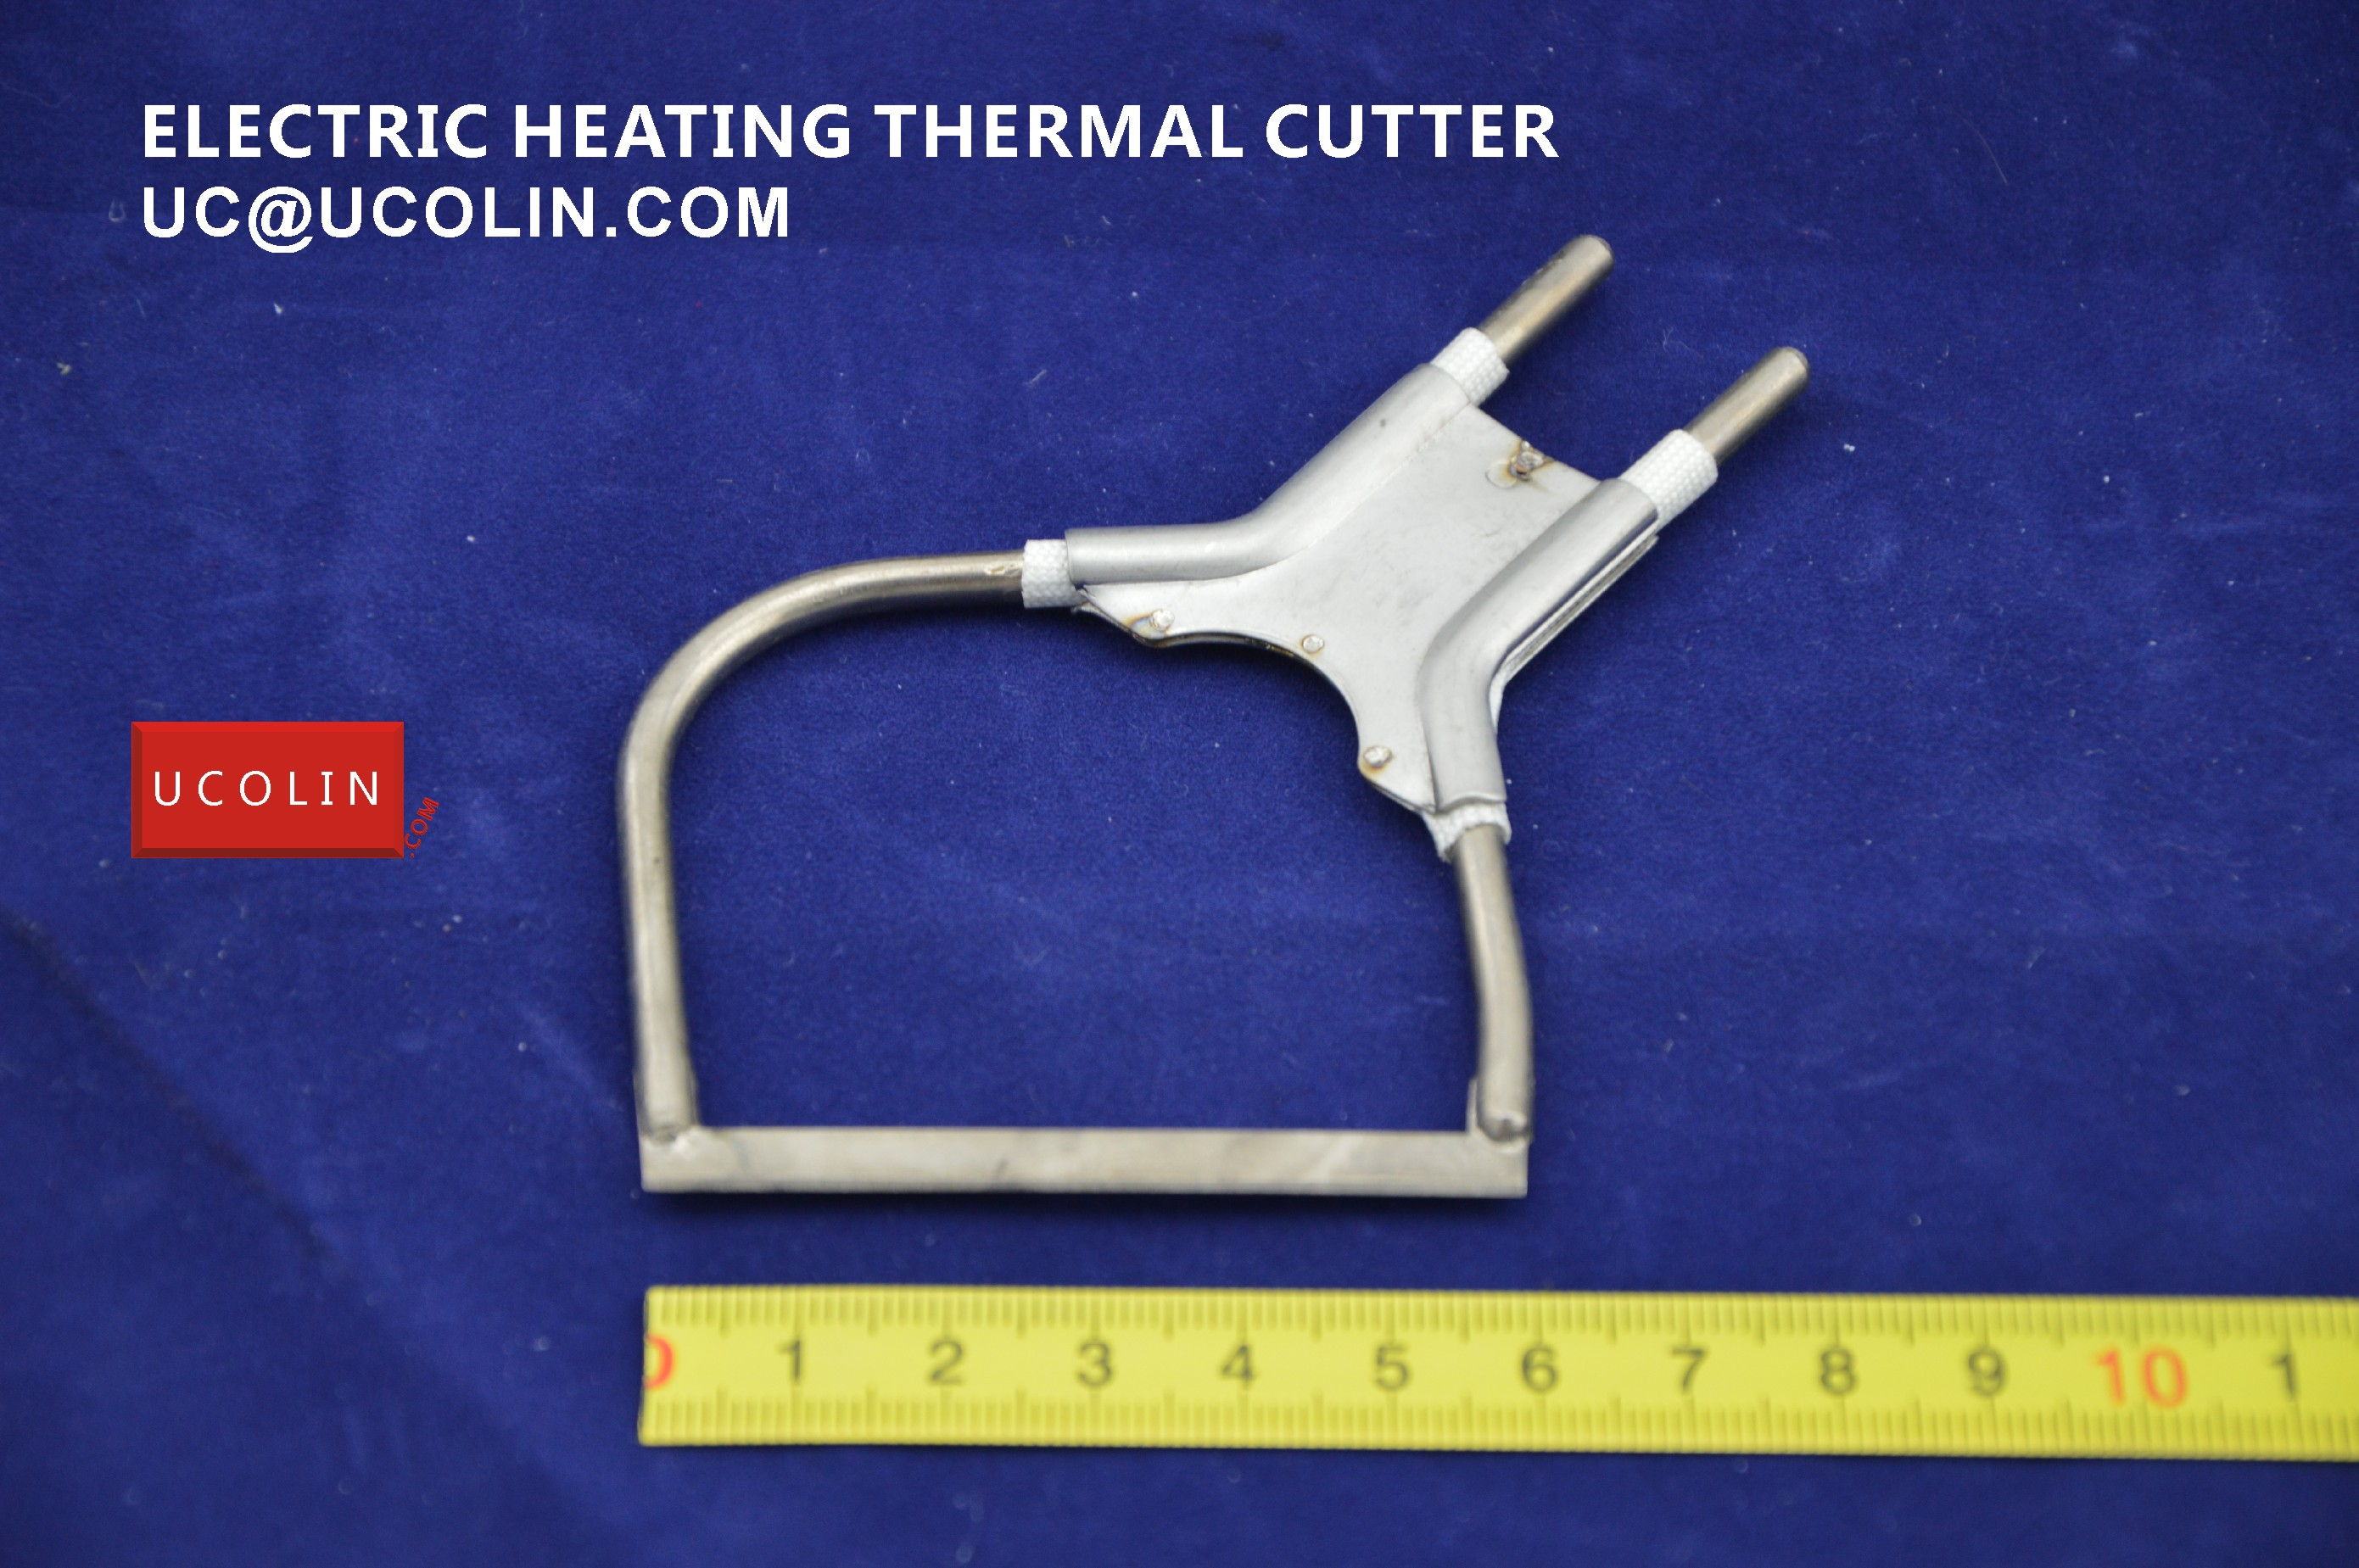 004 ELECTRIC HEATING CUTTER FOR SATINE RIBBON